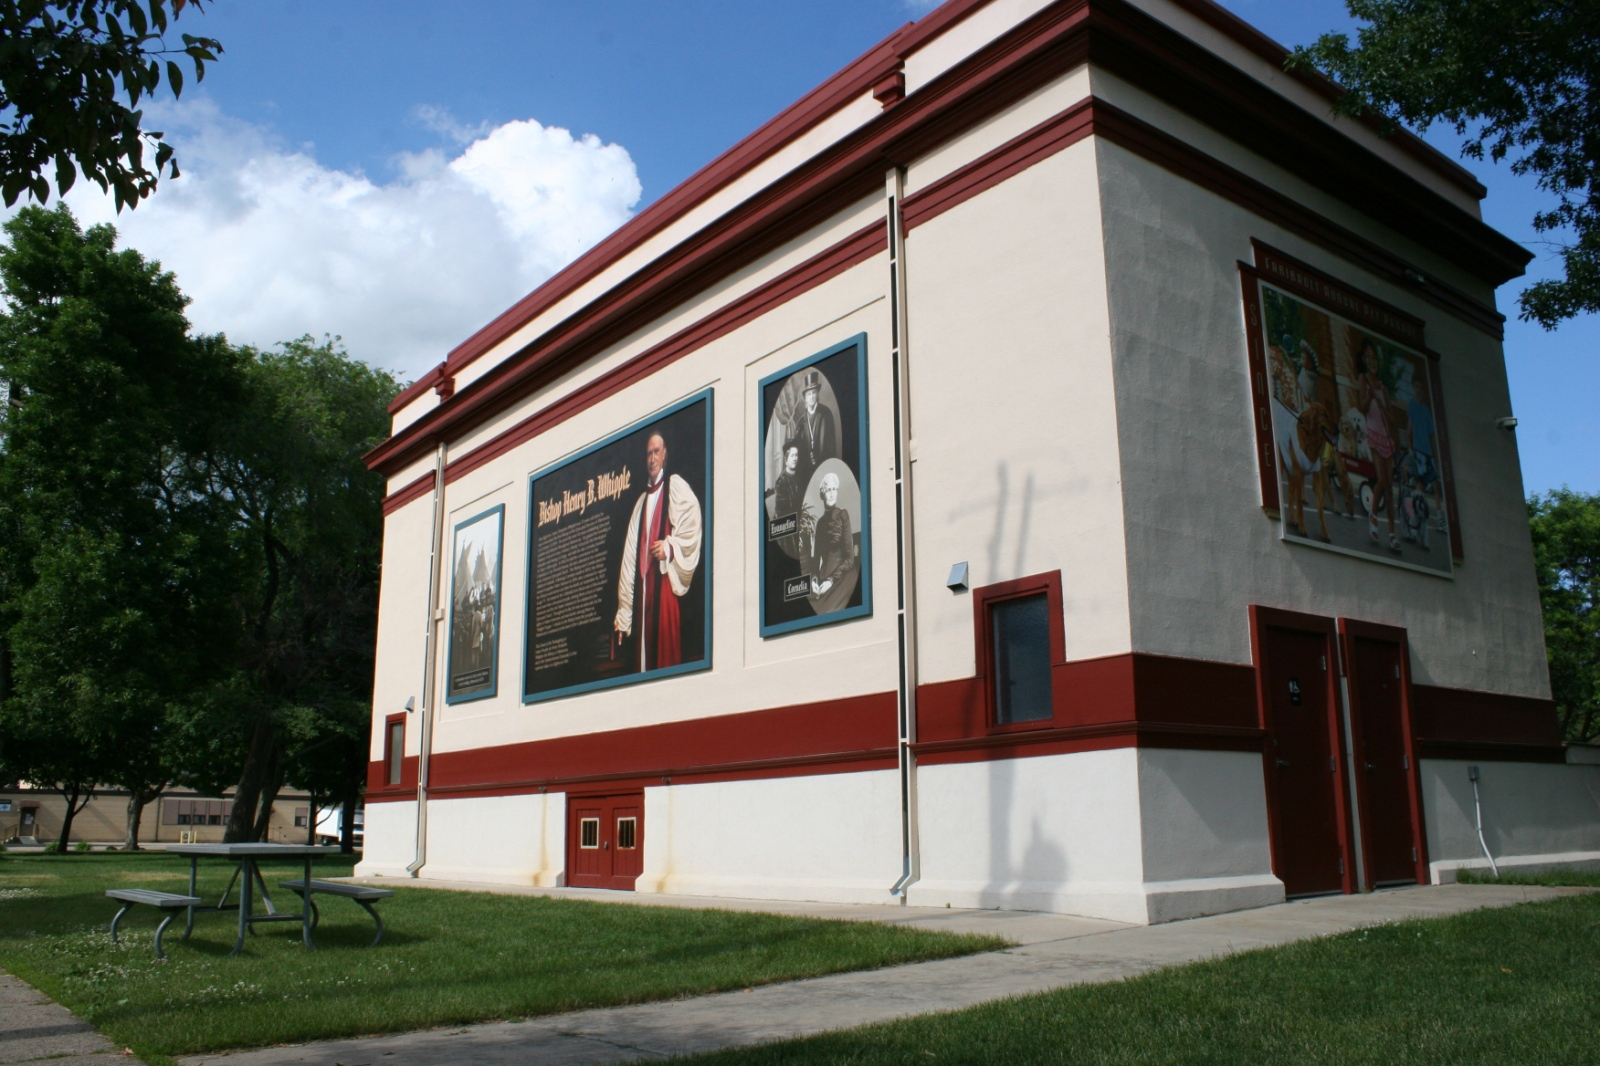 """Honoring Bishop Whipple's """"unfailing love & hope for humanity"""" on a mural in Faribault"""